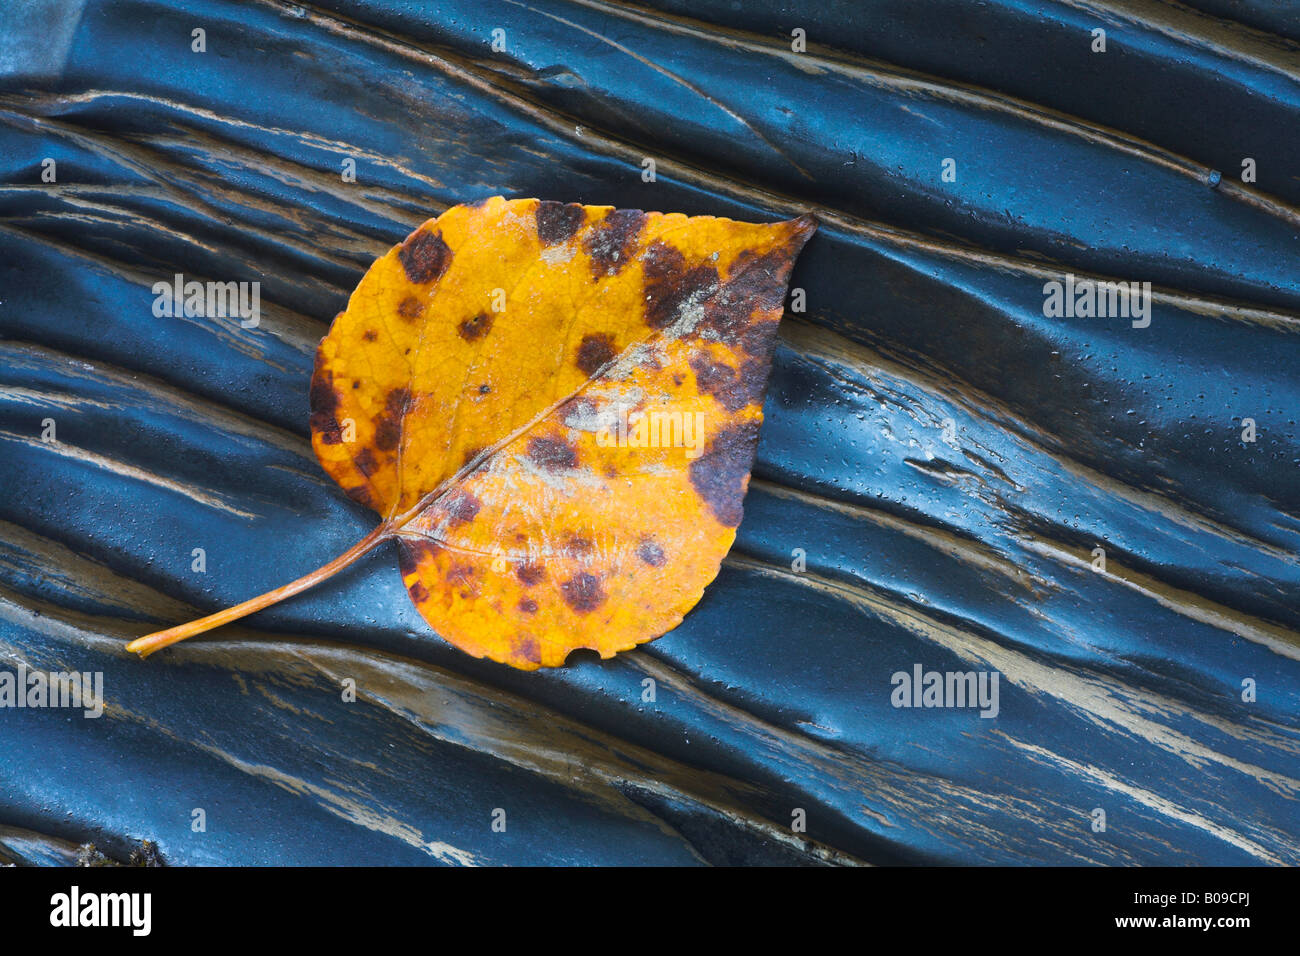 Fallen leaf on wet rocks, Yoho National Park, Canada - Stock Image